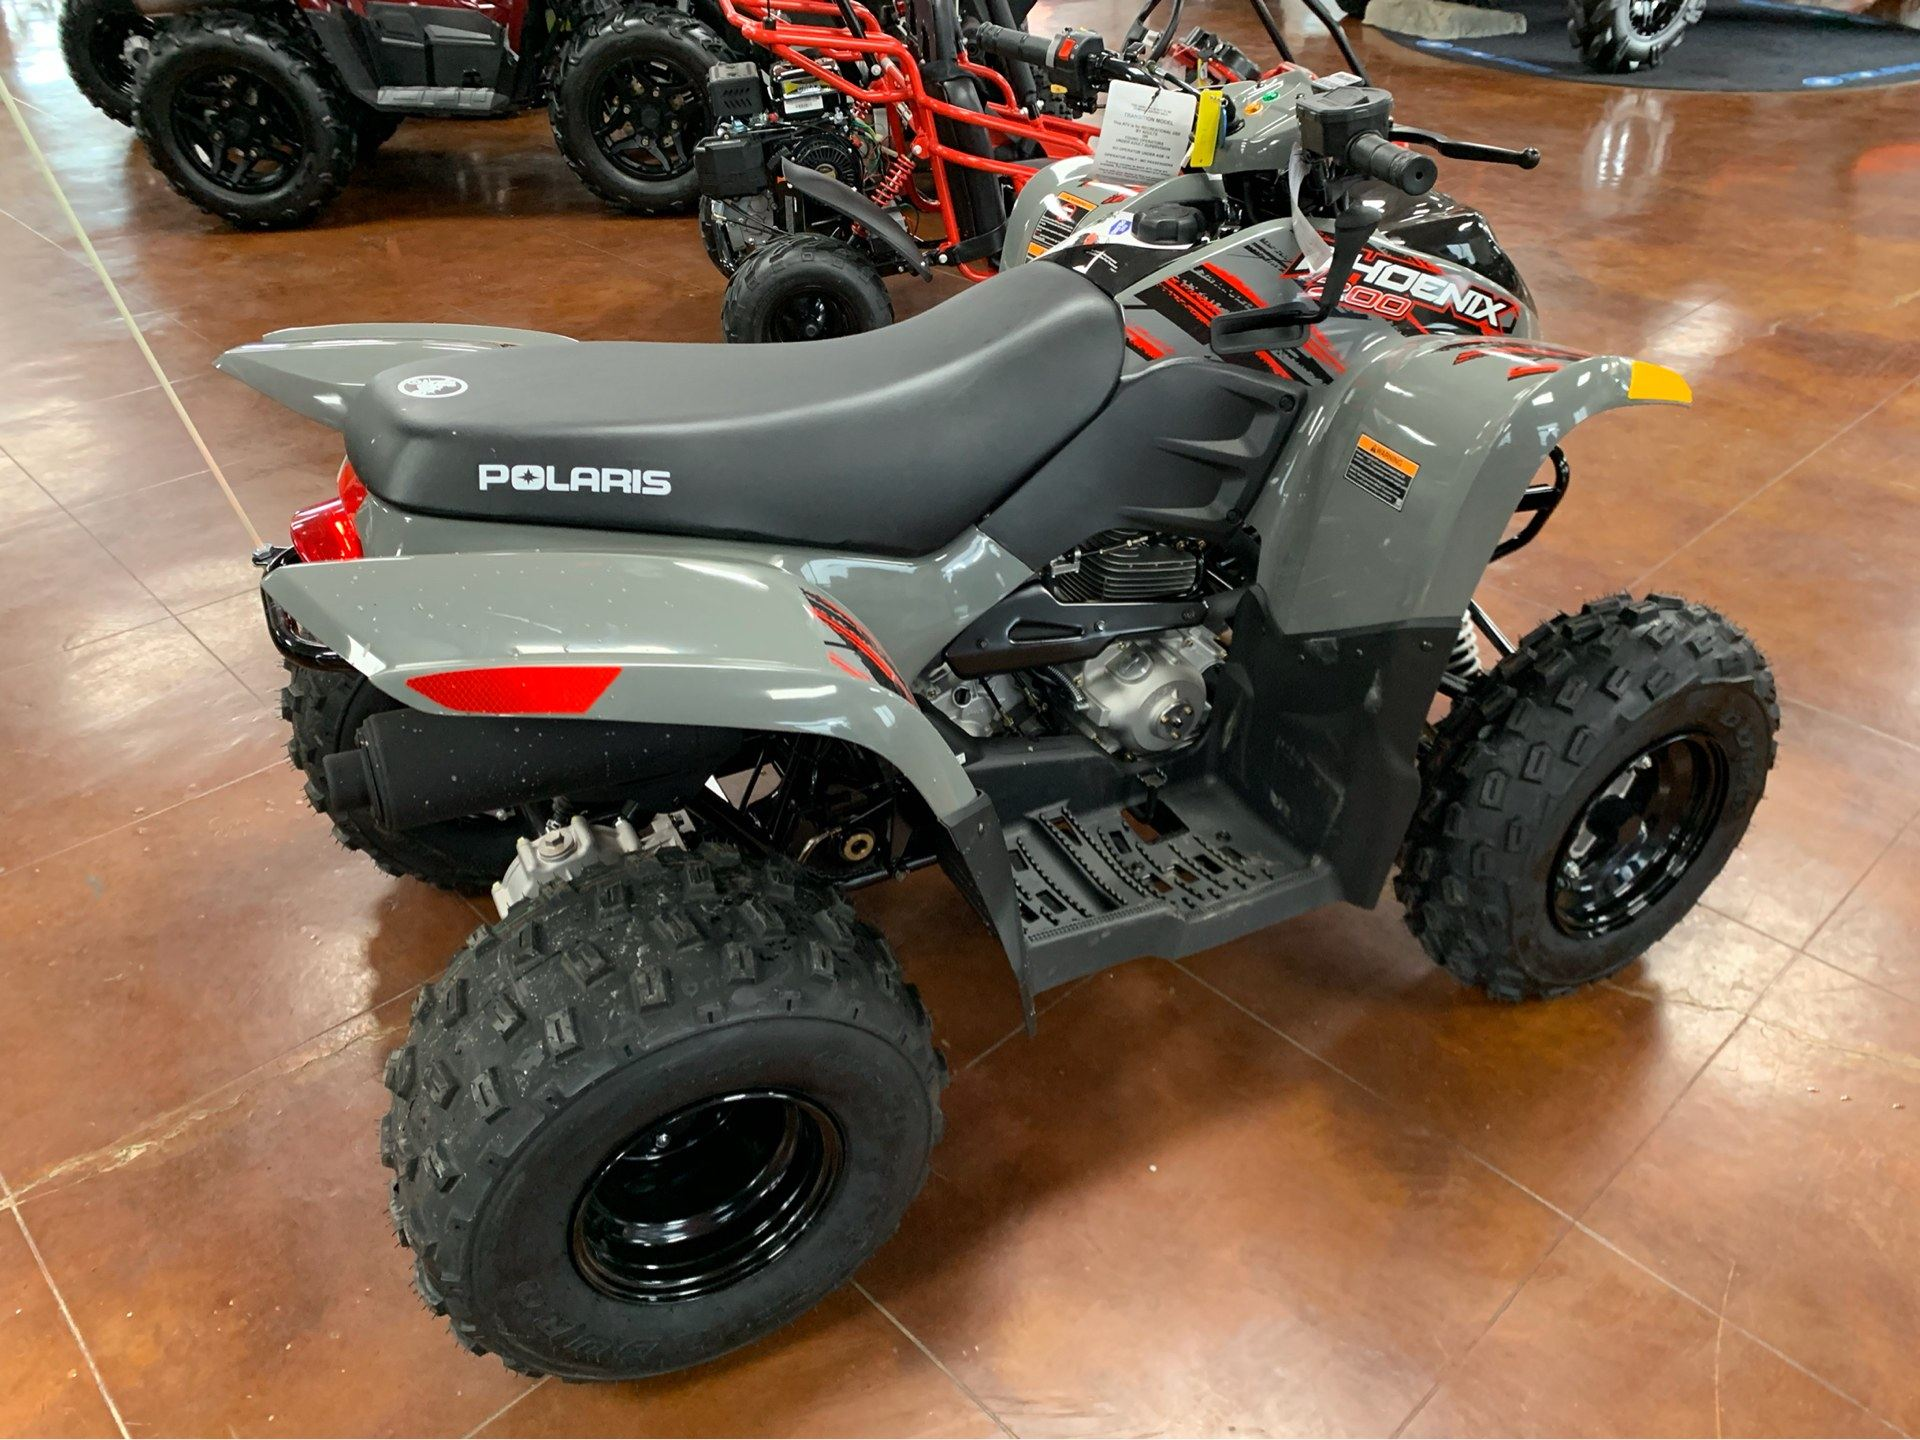 2019 Polaris Phoenix 200 in Marshall, Texas